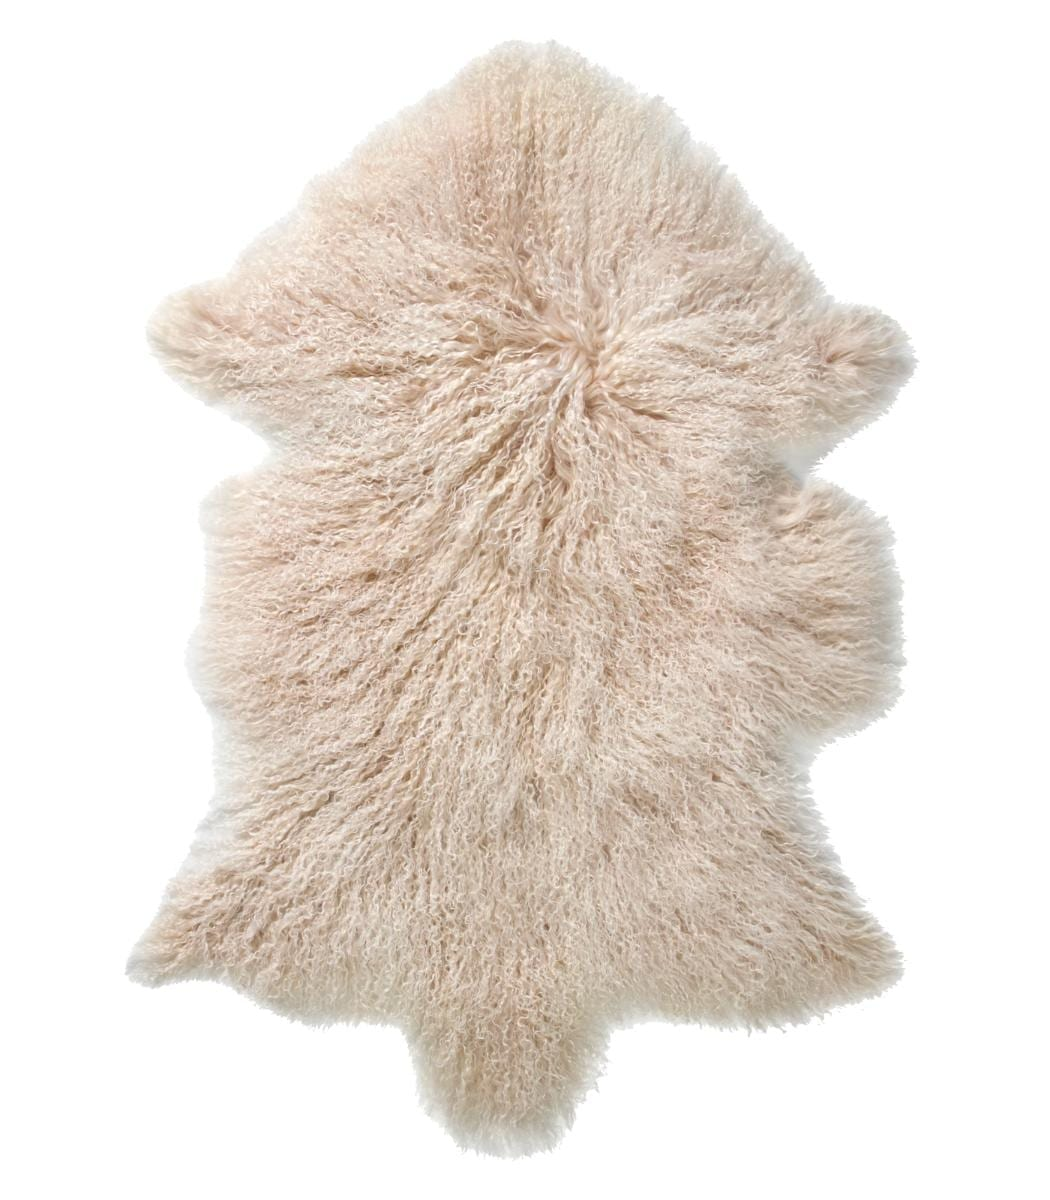 Everest Sheepskin Longhair - Arctic-0